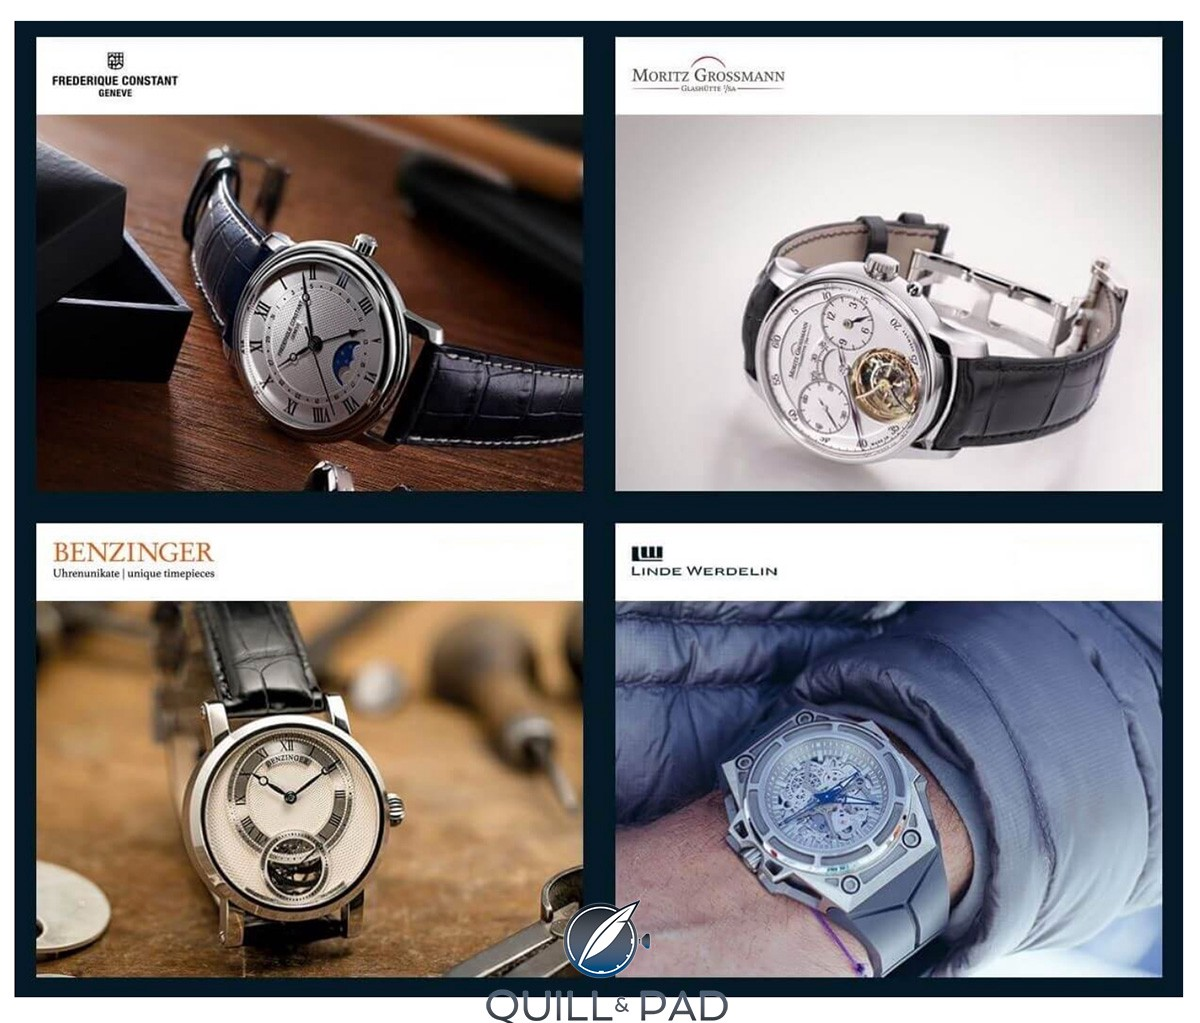 Chrono24 Boutique brands include Benzinger, Moritz Grossmann, Linde Werdelin and Frédérique Constant (more are sure to follow)